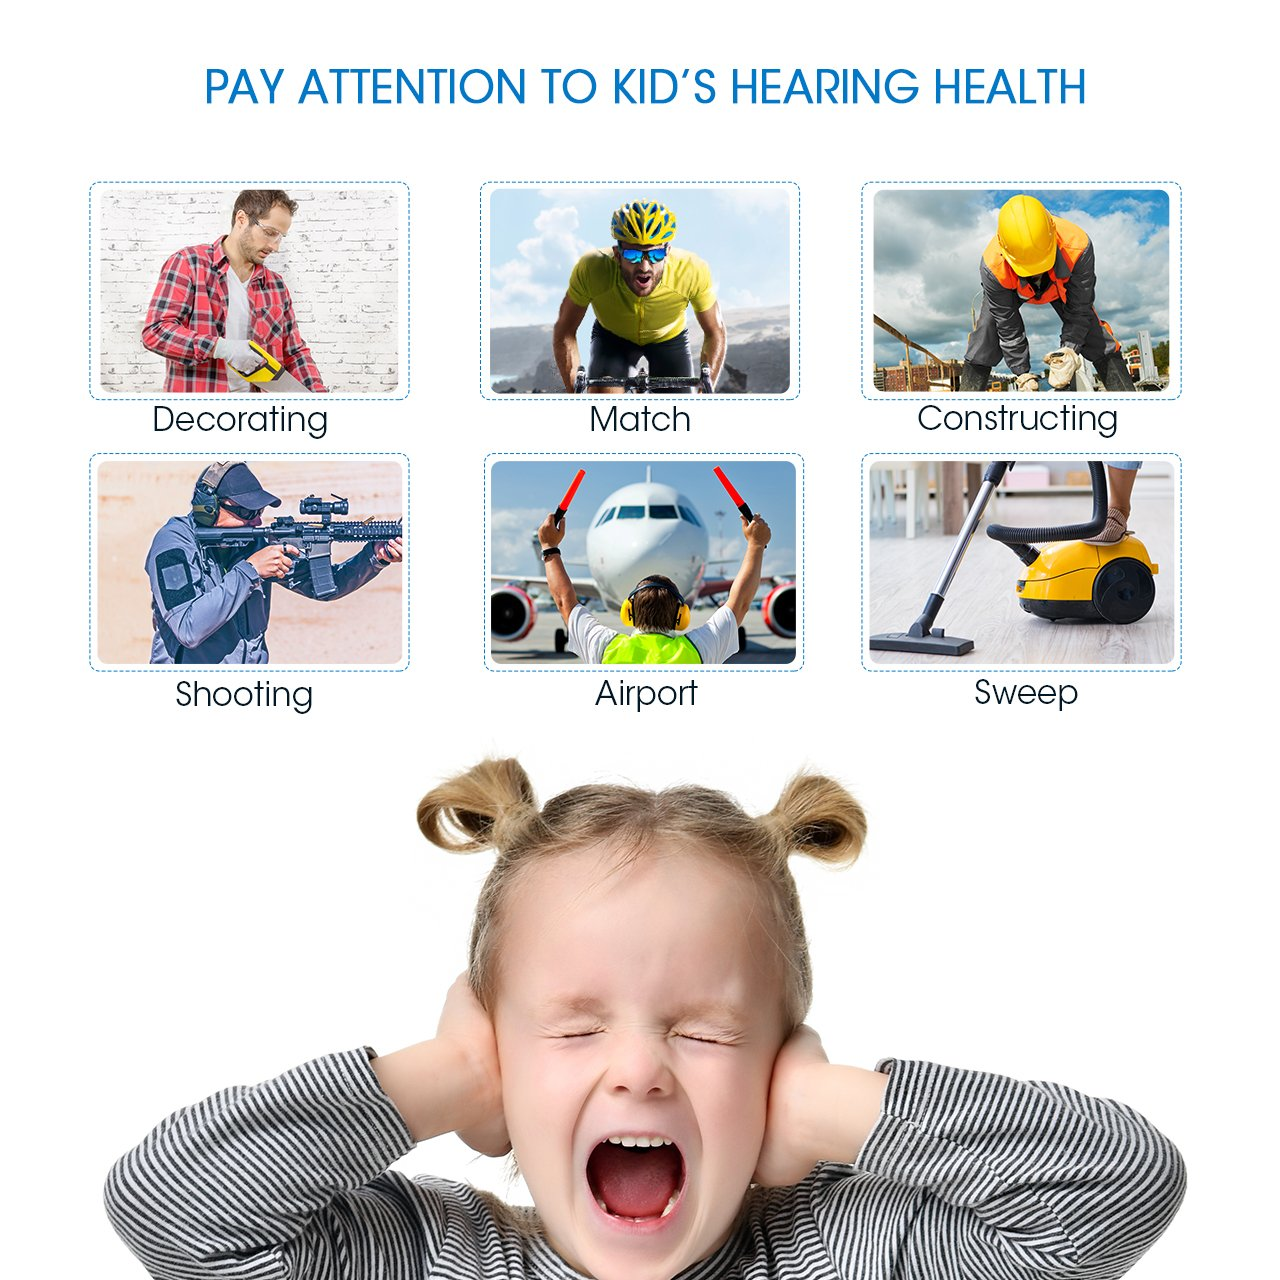 Mpow 068 Kids Ear Protection Safety Ear Muffs, NRR 25dB Noise Reduction Hearing Protection for Kids, Toddler Ear Protection for Shooting Range Hunting Season for Kids Toddlers Children (White) by Mpow (Image #3)